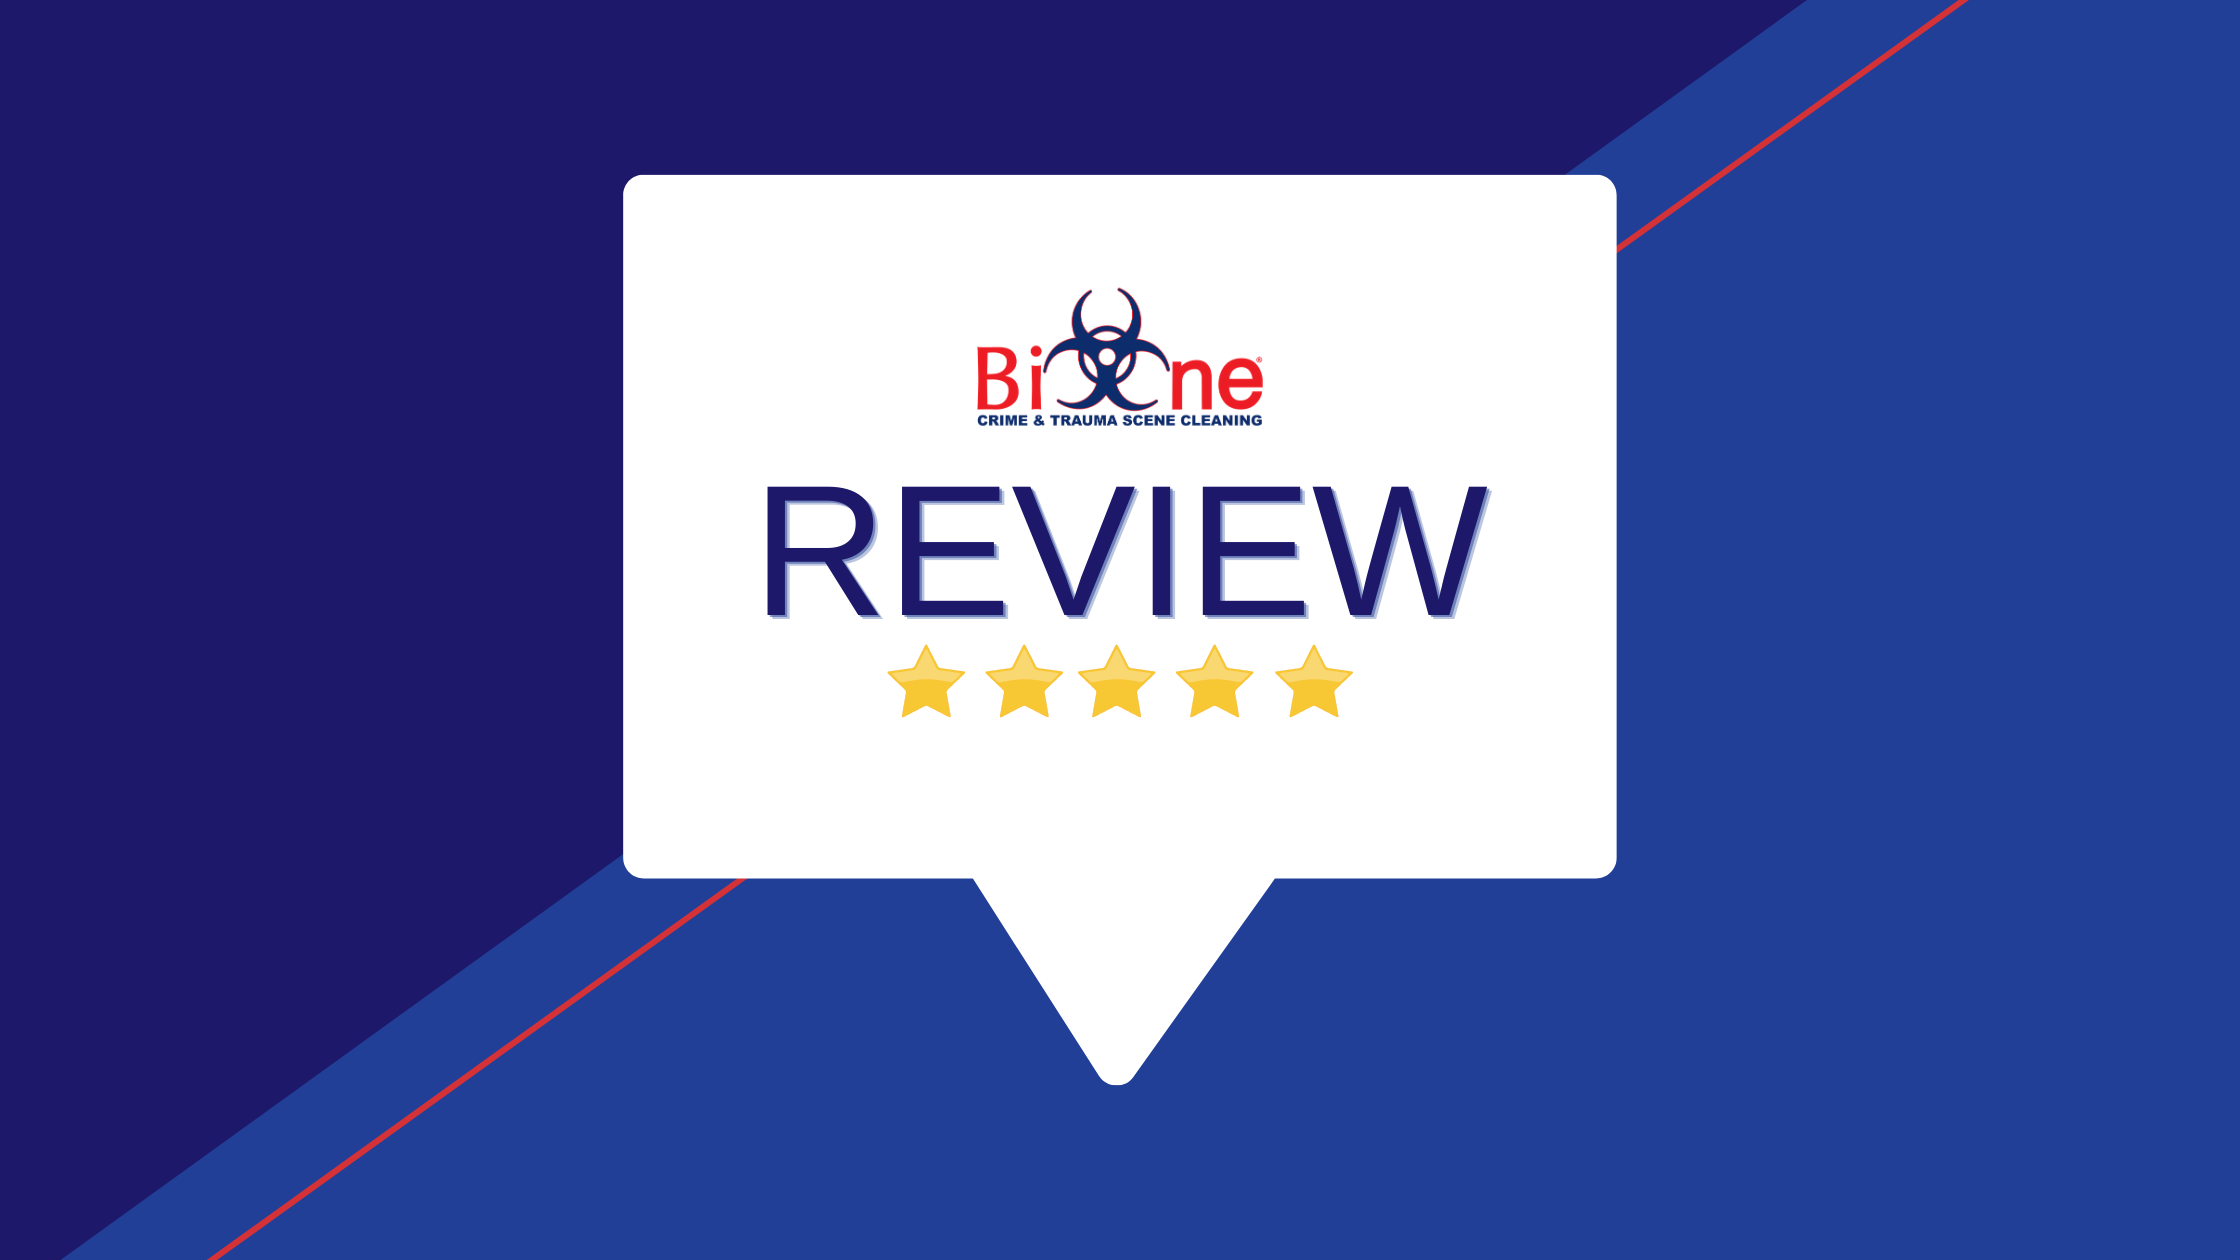 New Bio-One Review!